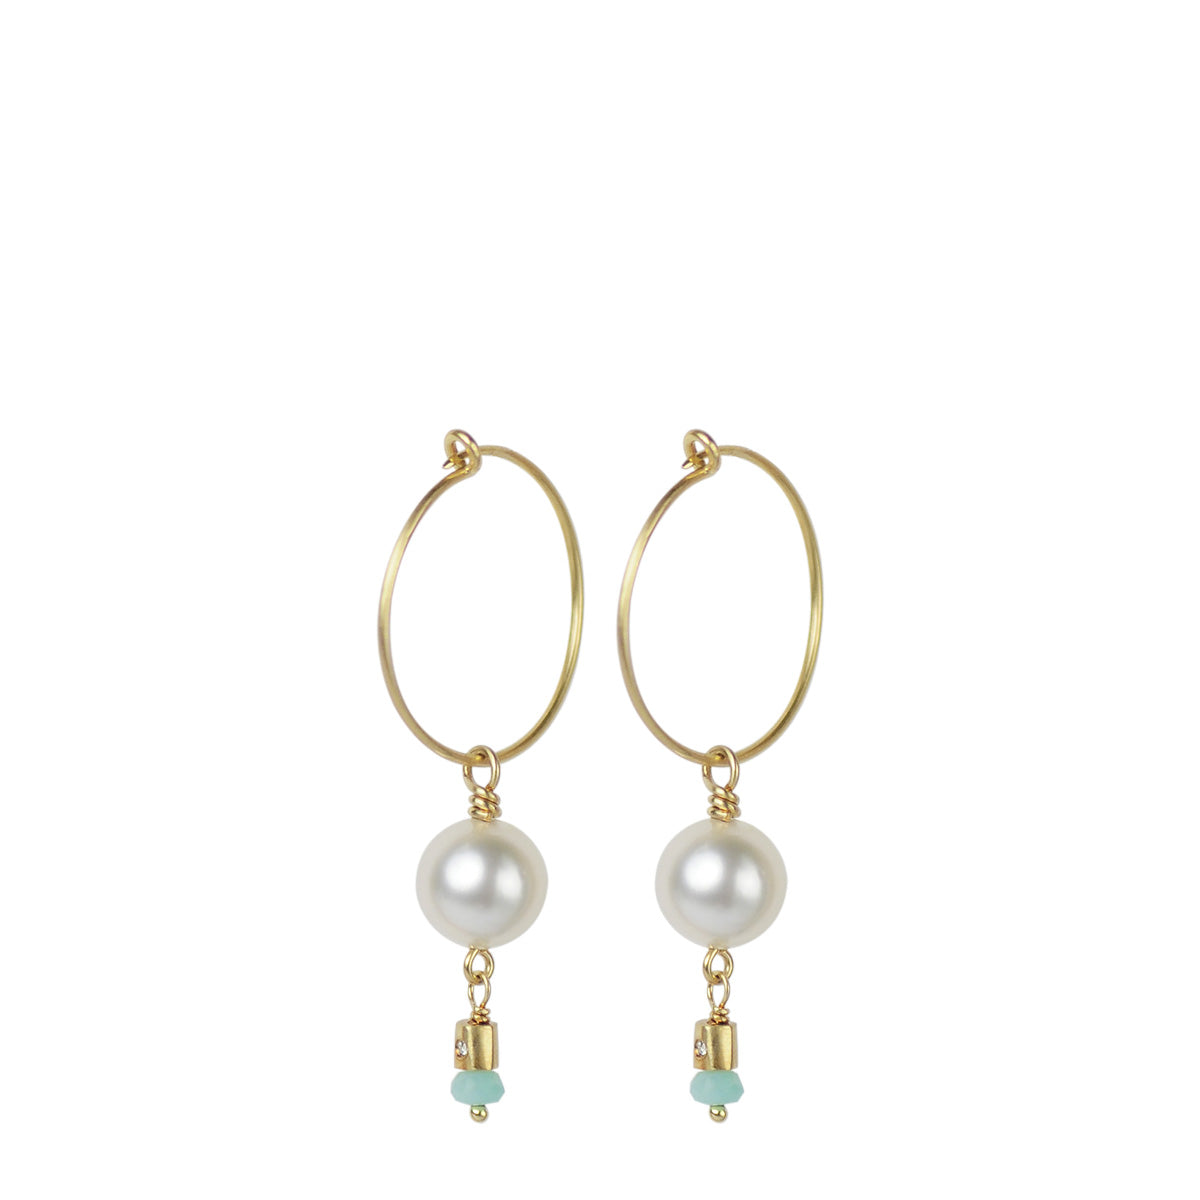 18K Gold Simple Hoop Earrings with South Sea Pearls and Peruvian Opal Beads